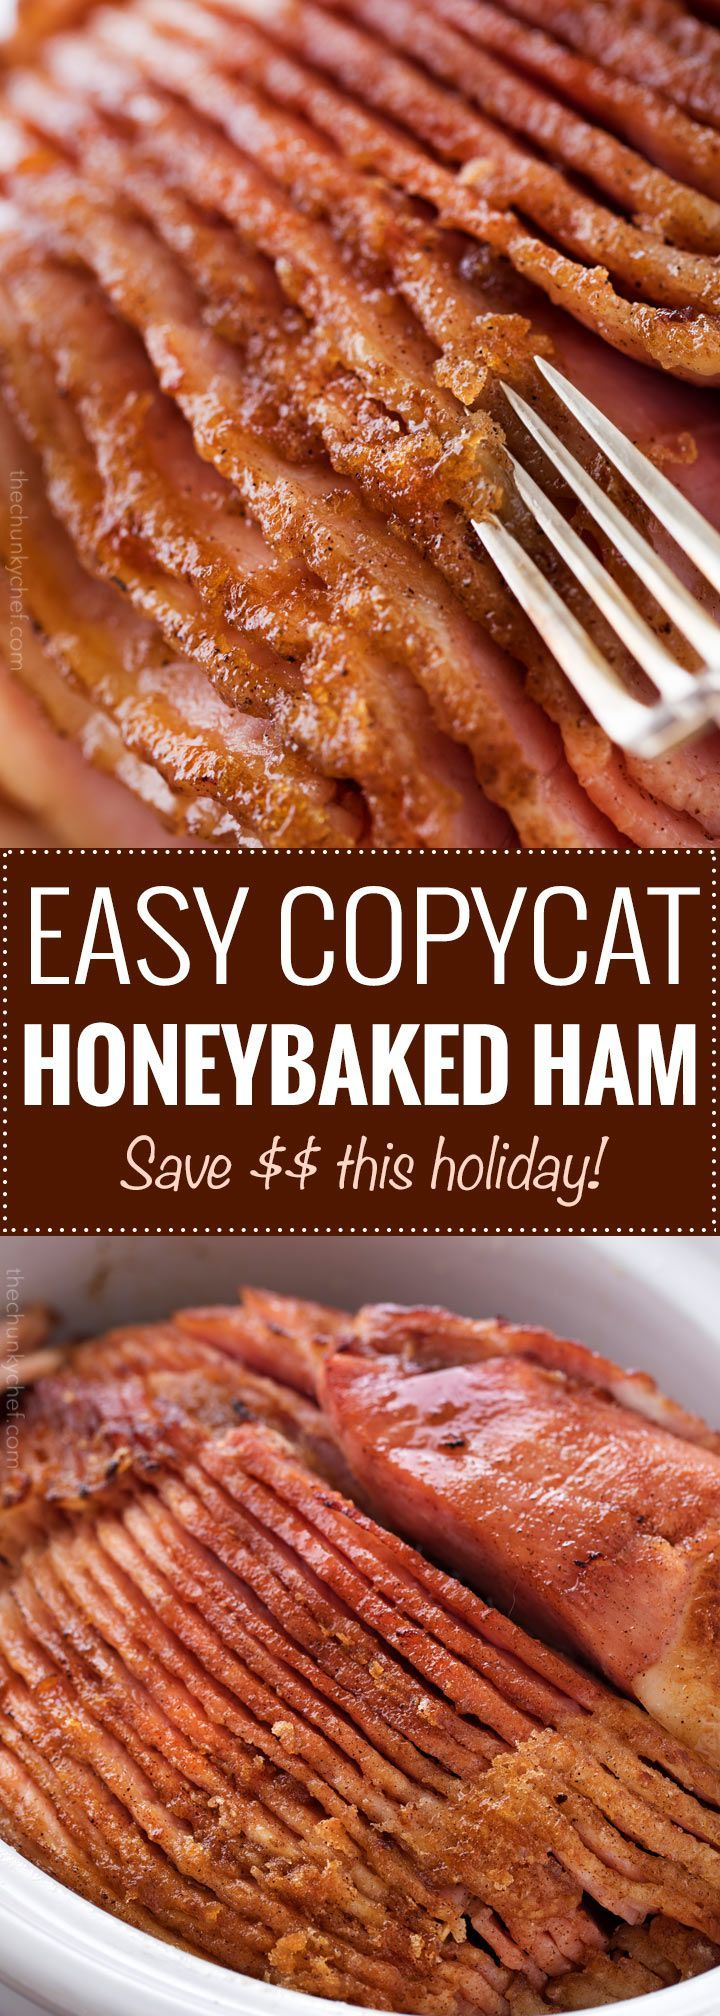 This copycat HoneyBaked ham is succulent and tender, with the most amazing crispy sweet glaze! Made with honey, sugar, and plenty of mouthwatering spices, you'll be amazed at how easy it is to make this ham at home and save a TON of money! |